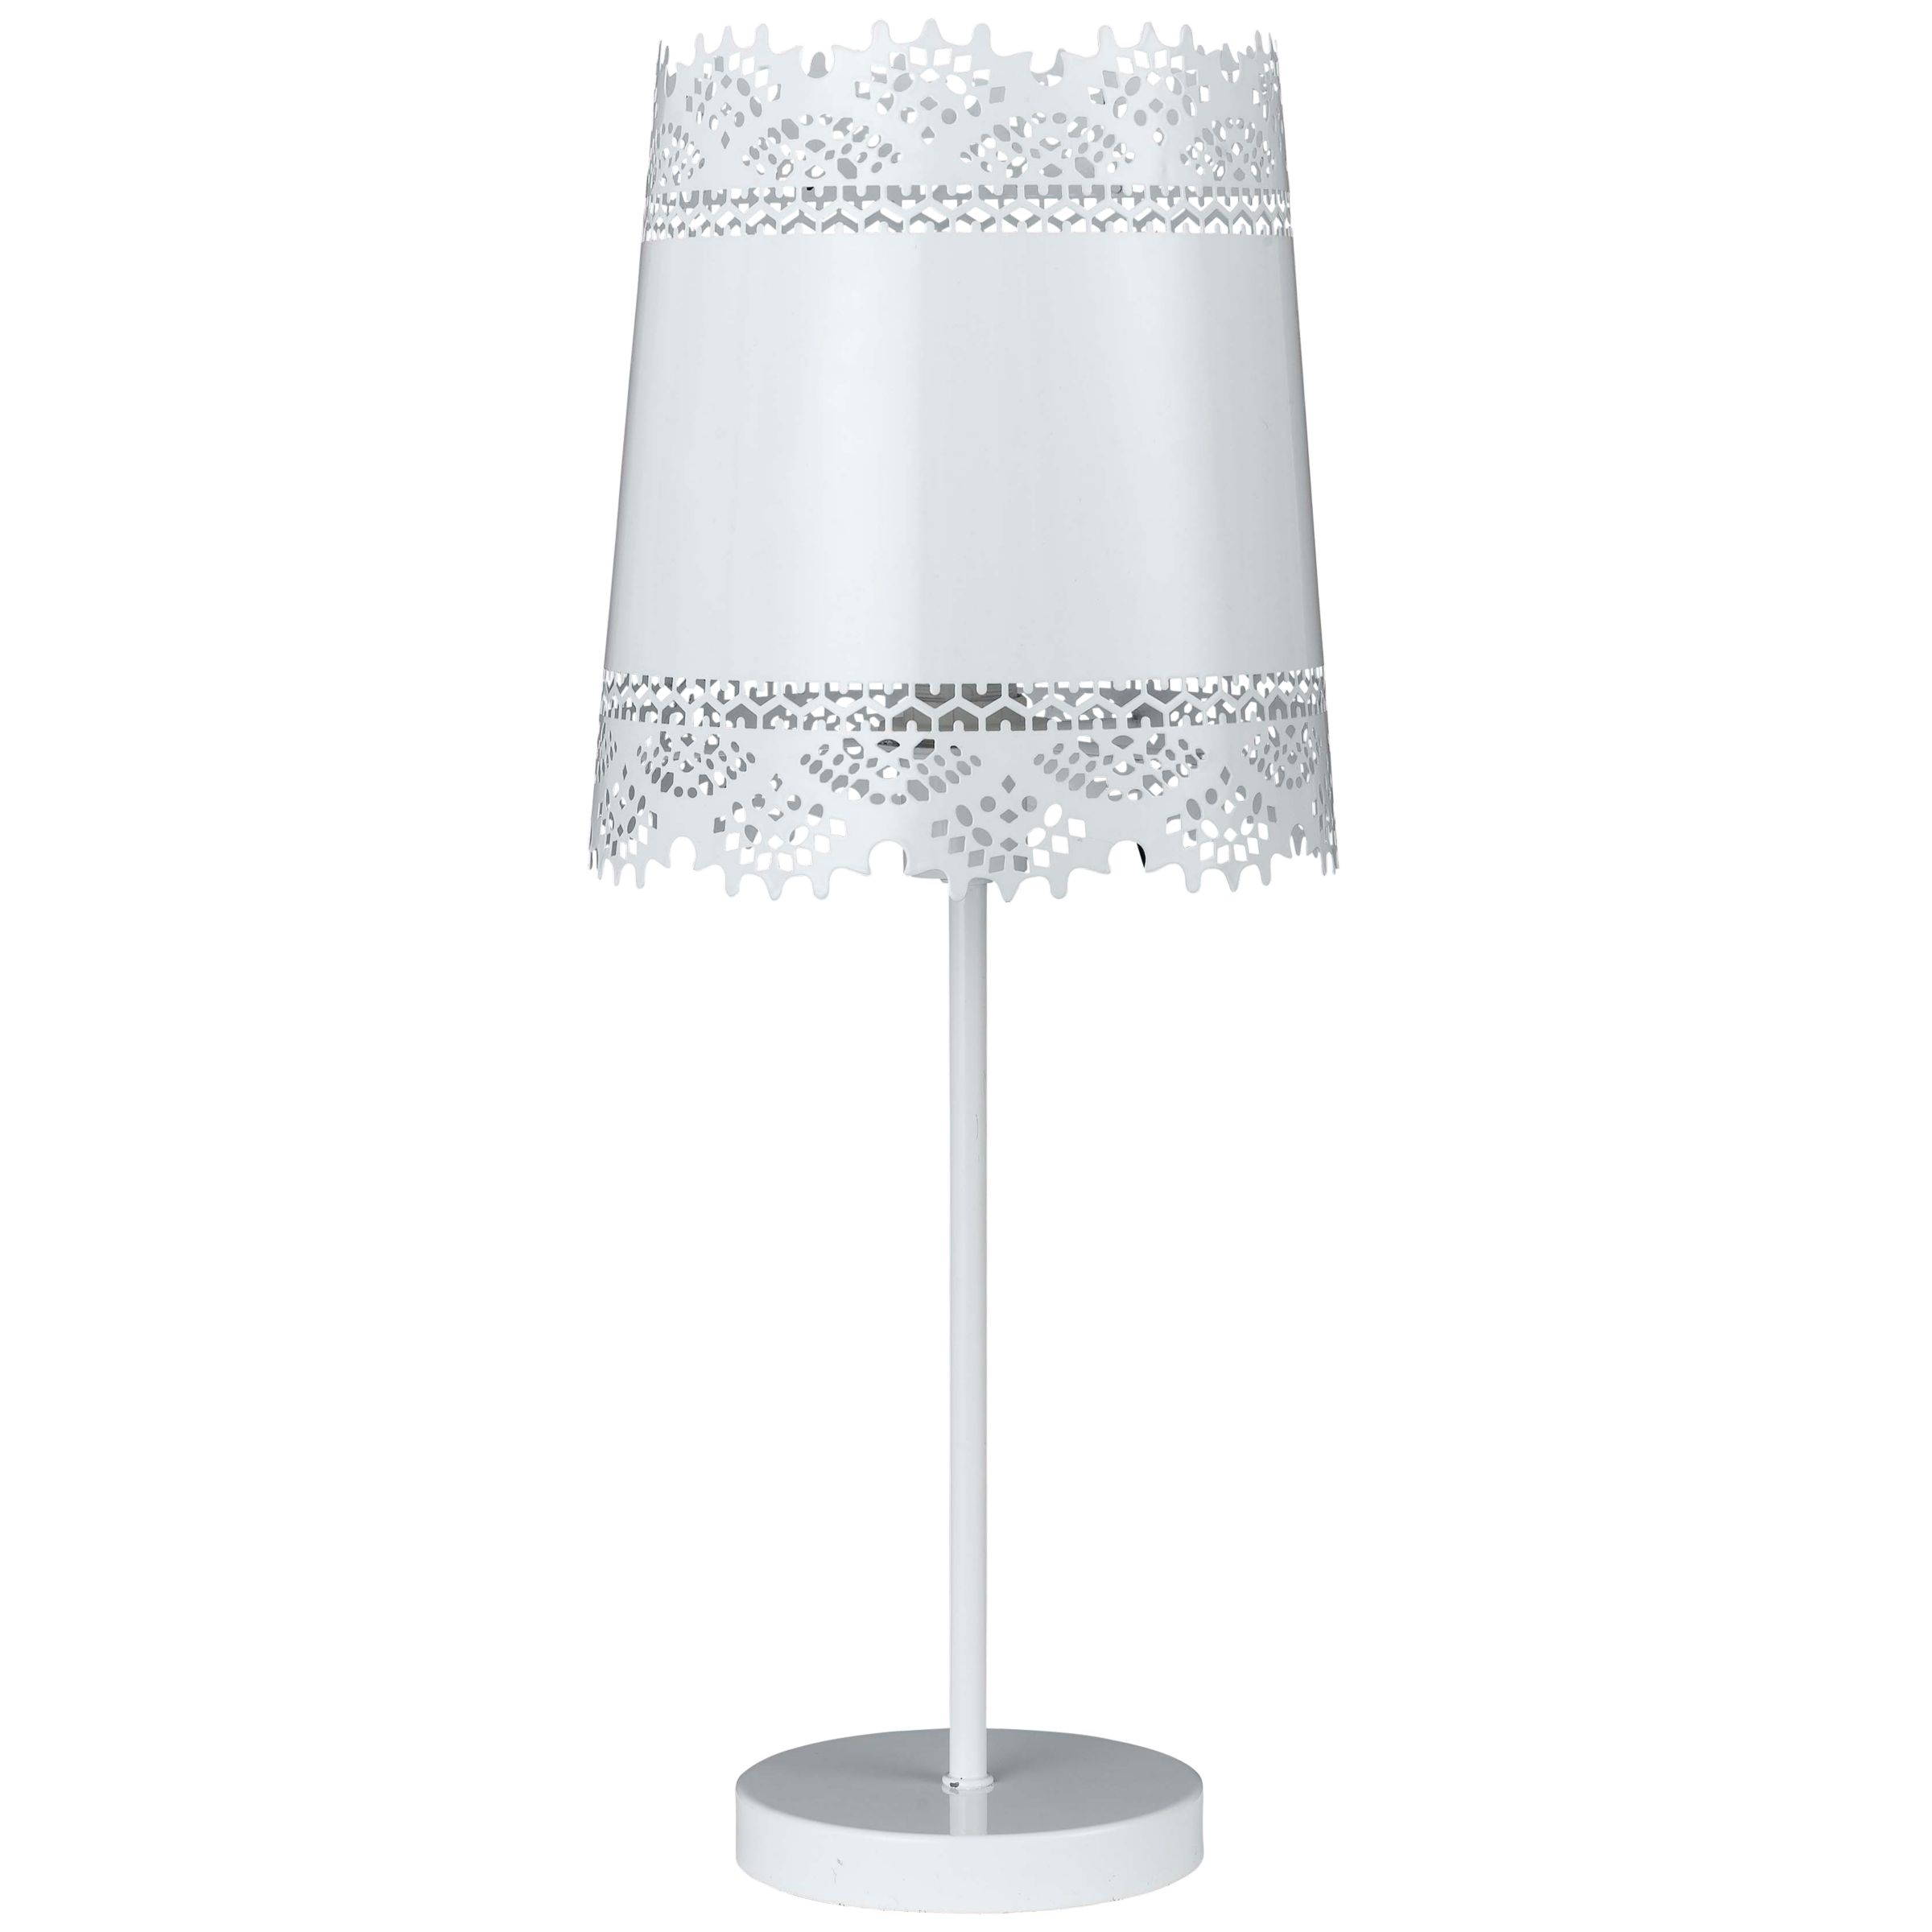 John lewis lacey table lamp large review compare for Table lamp shades john lewis